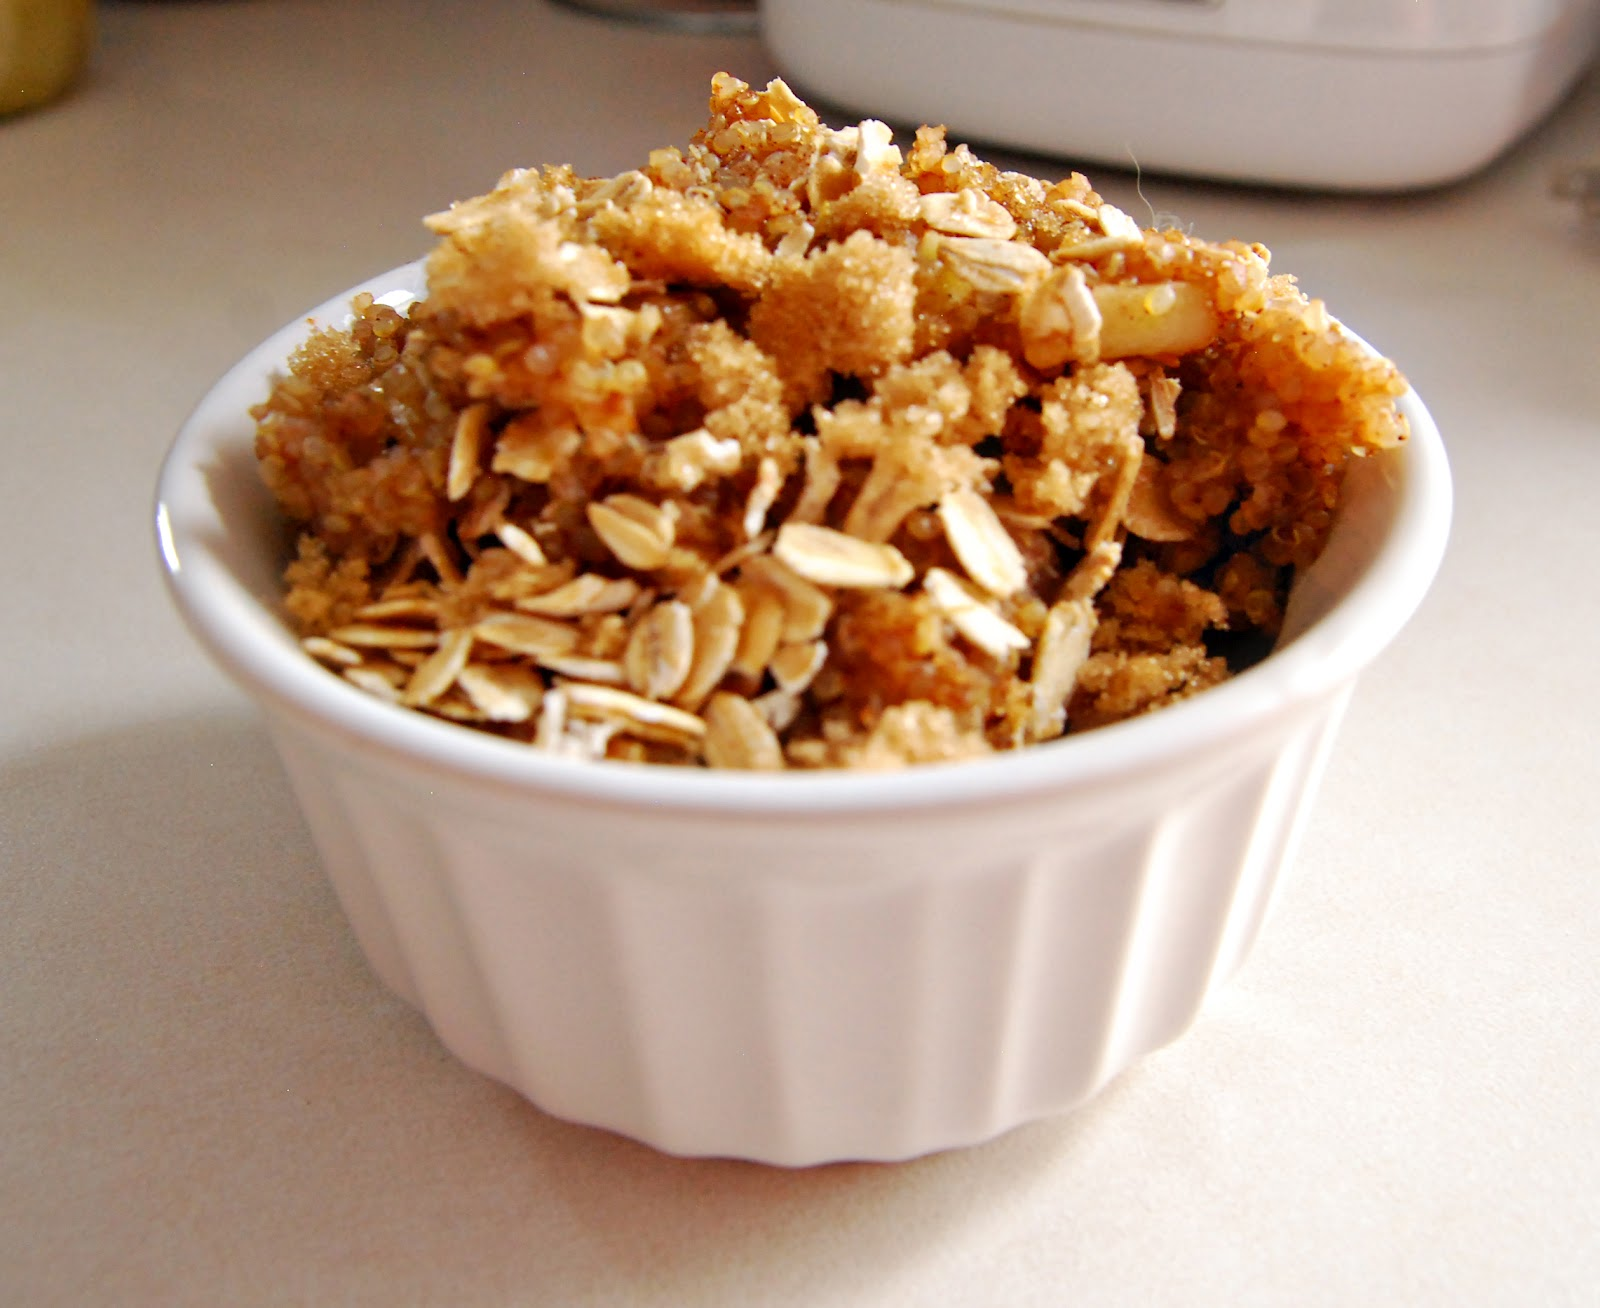 Frugally Foodulgent: Baked Apple Cinnamon Quinoa